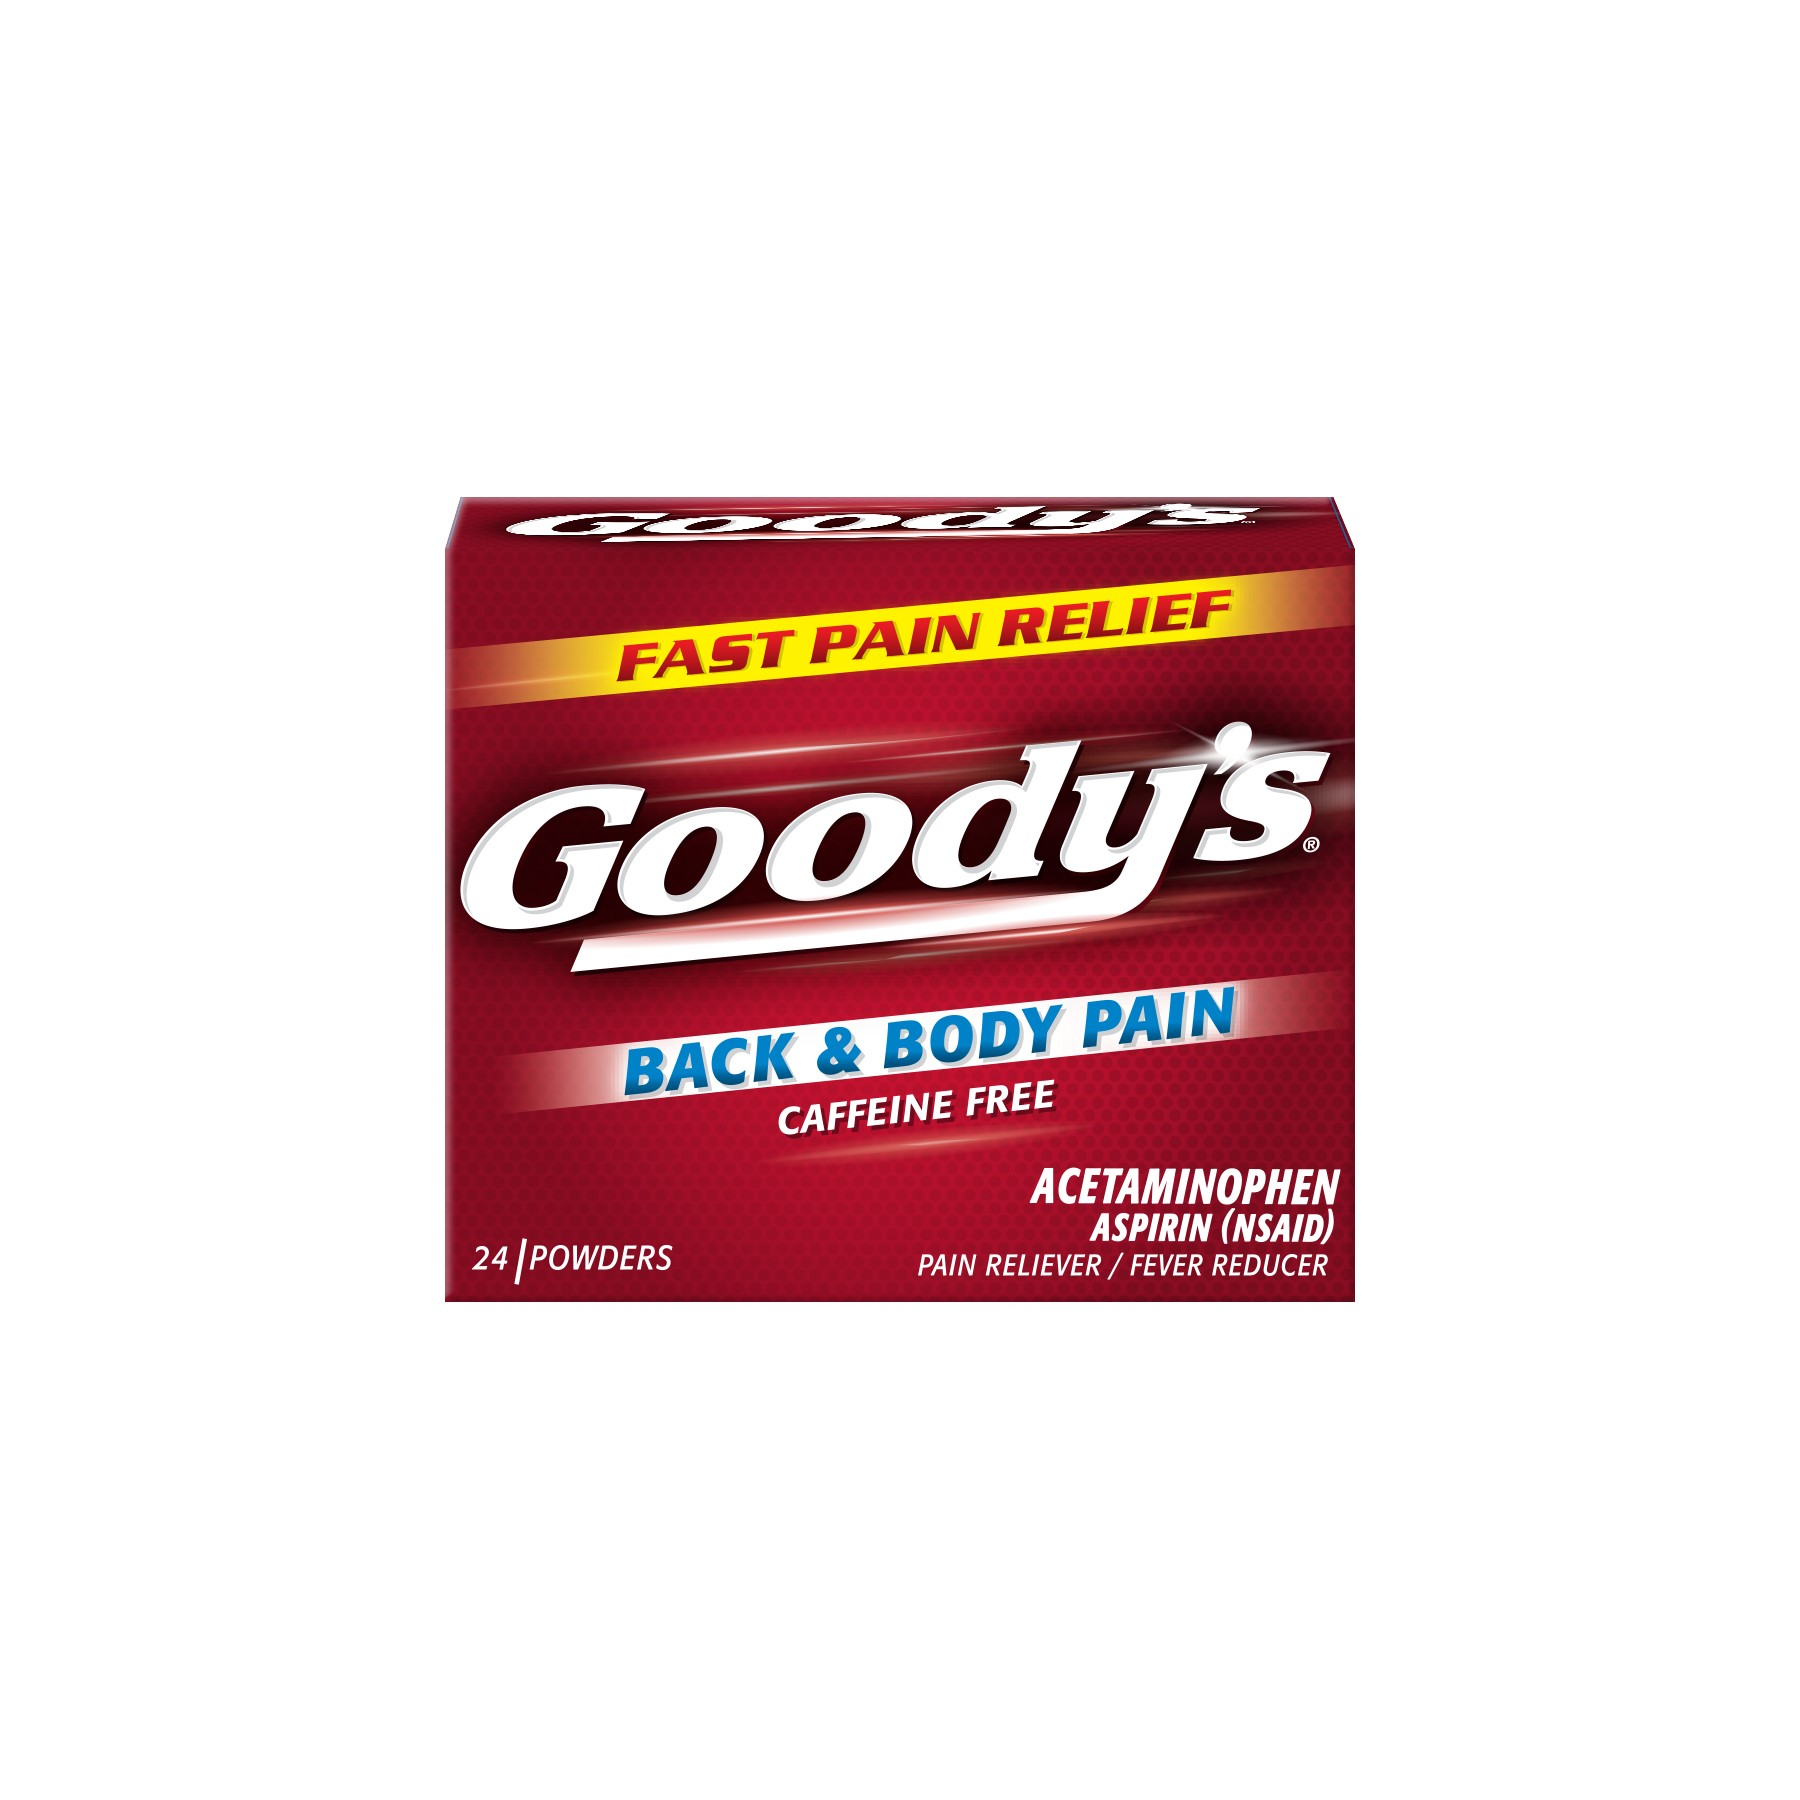 Goody's Back & Body Pain Acetaminophen Aspirin Pain Reliever/Fever Reducer Powders, 24 ct